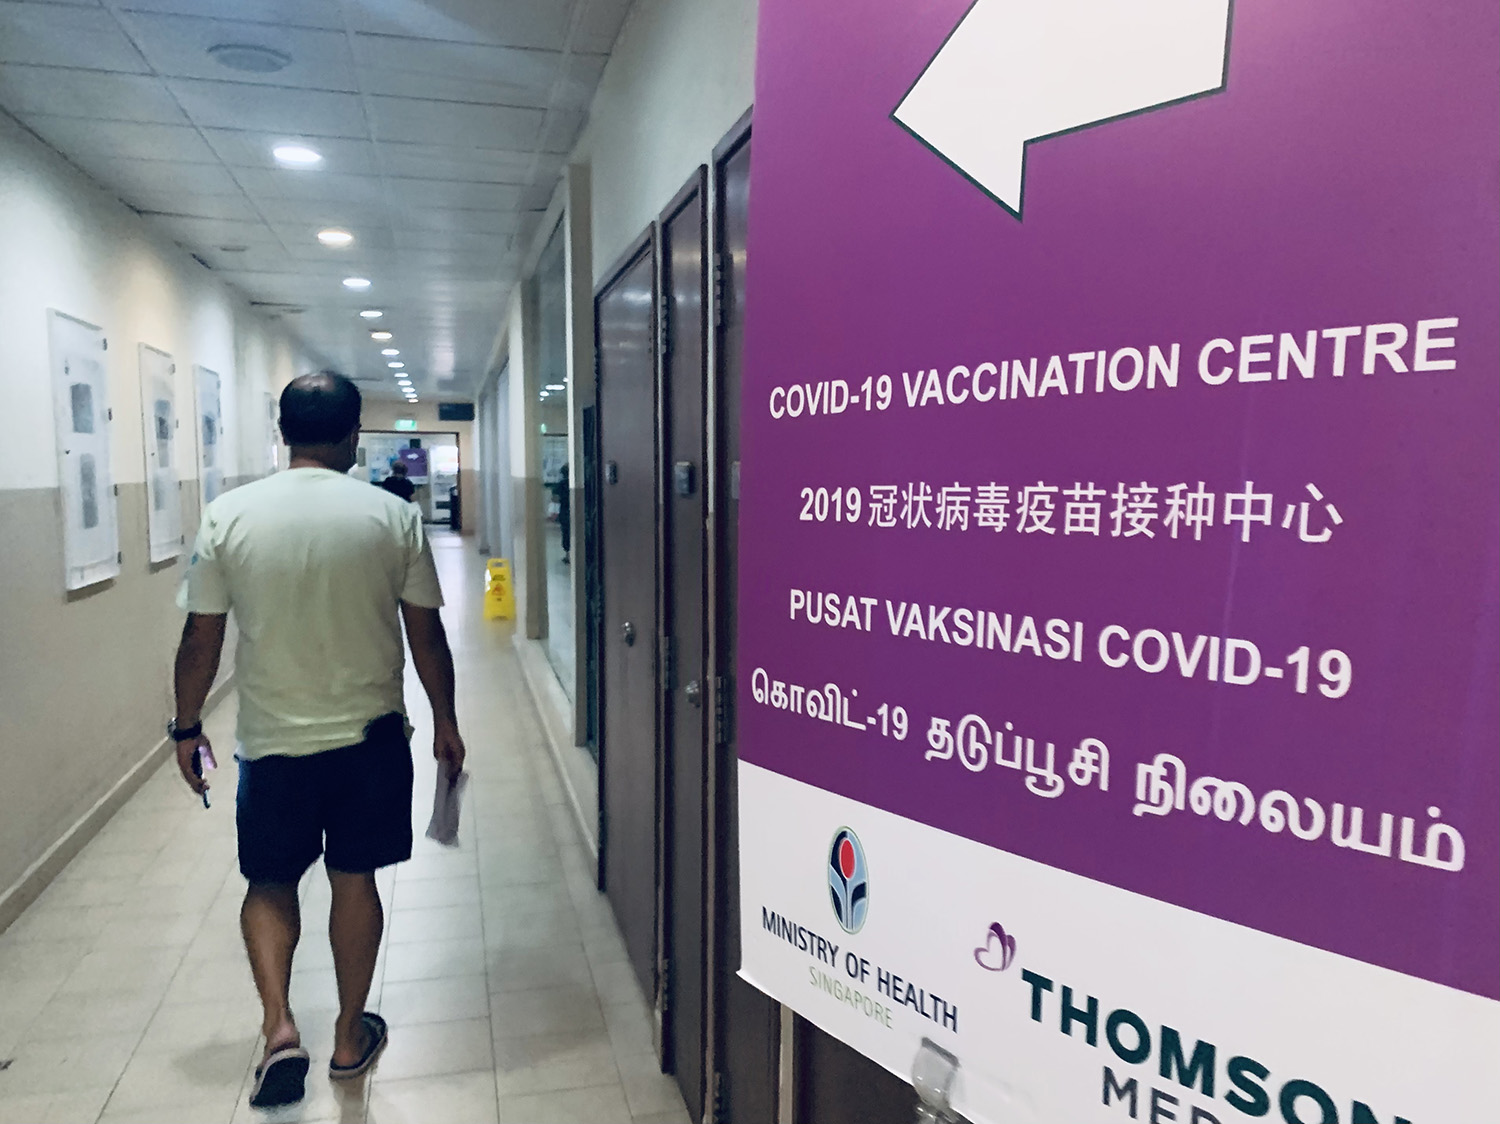 A vaccination centre in Singapore